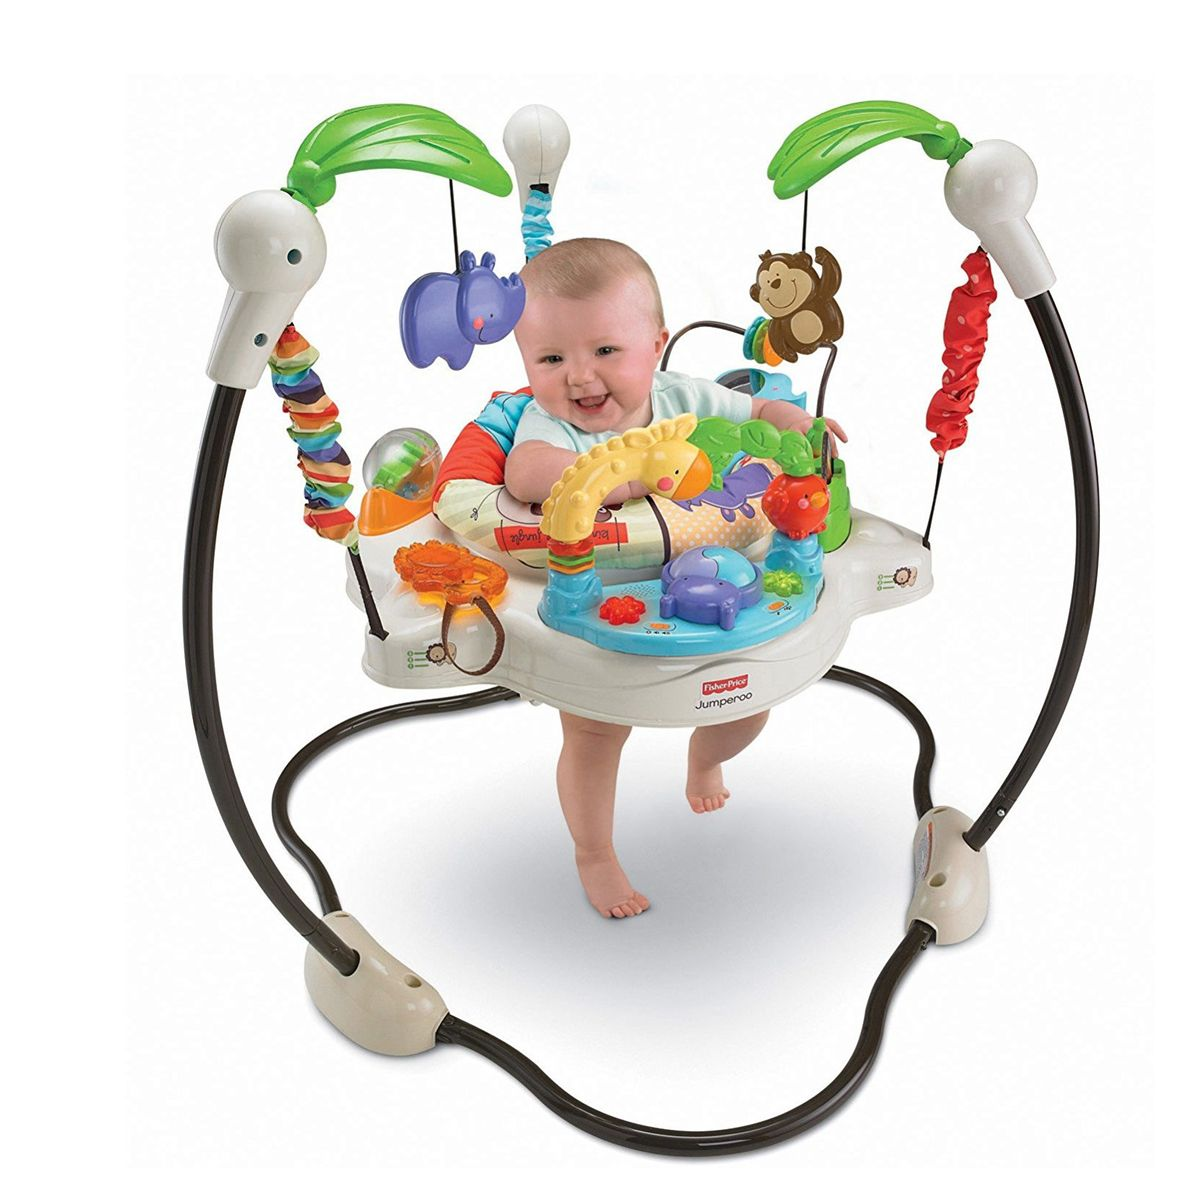 Picture of: The Best Baby Bouncers And Jumpers Reviews 2017 The Strategist New York Magazine